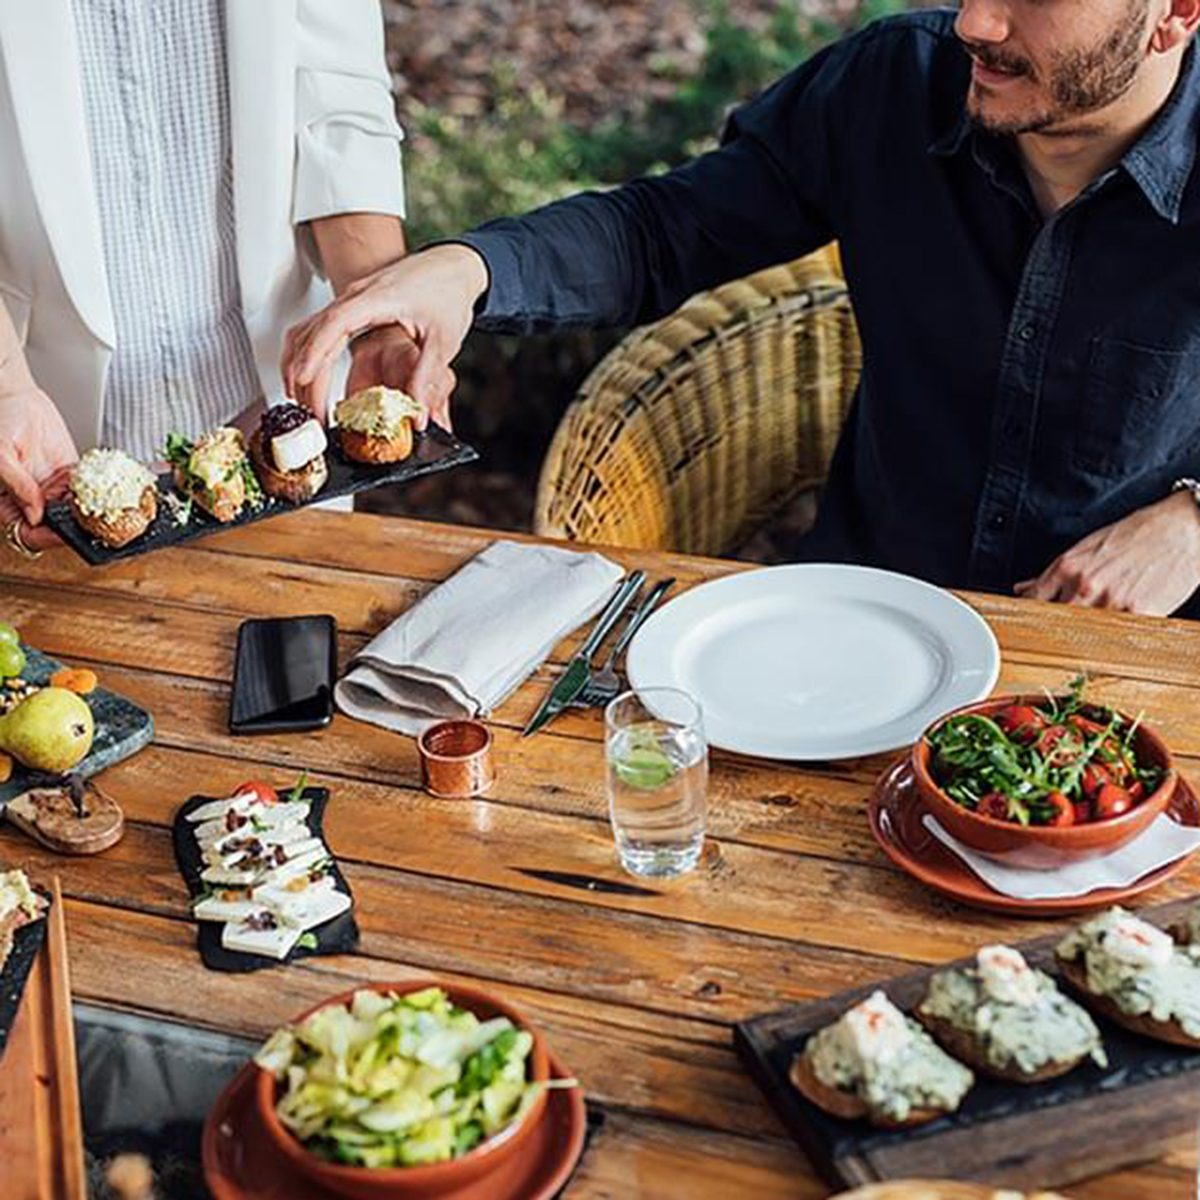 Man reaching for appetizers